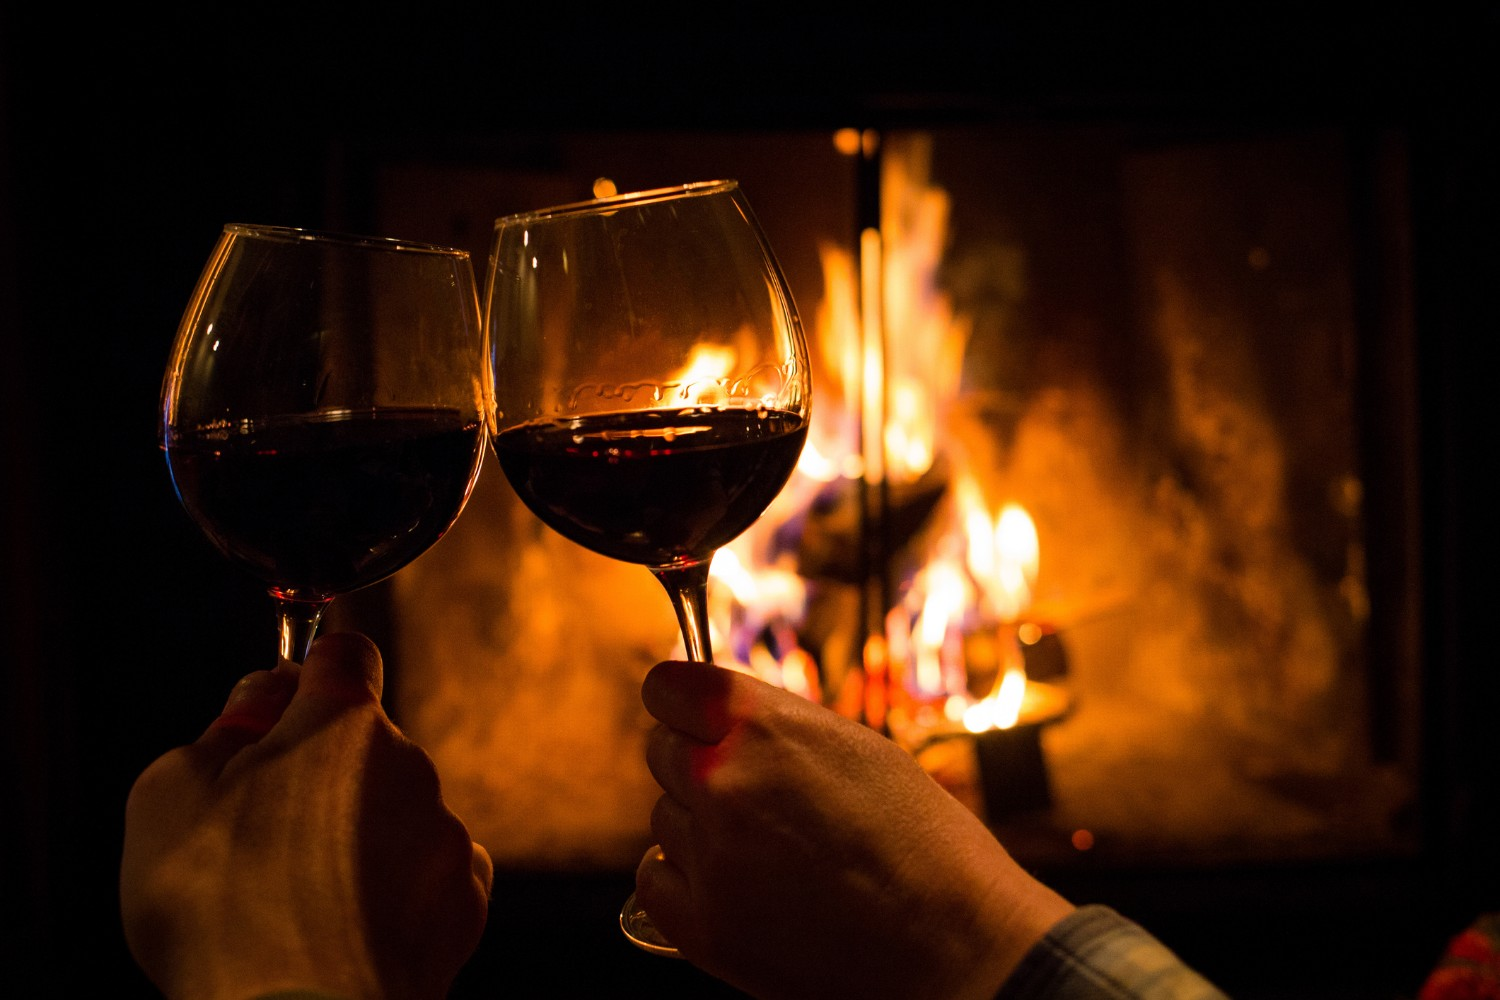 couple holding a pair of wine glasses by a fireplace